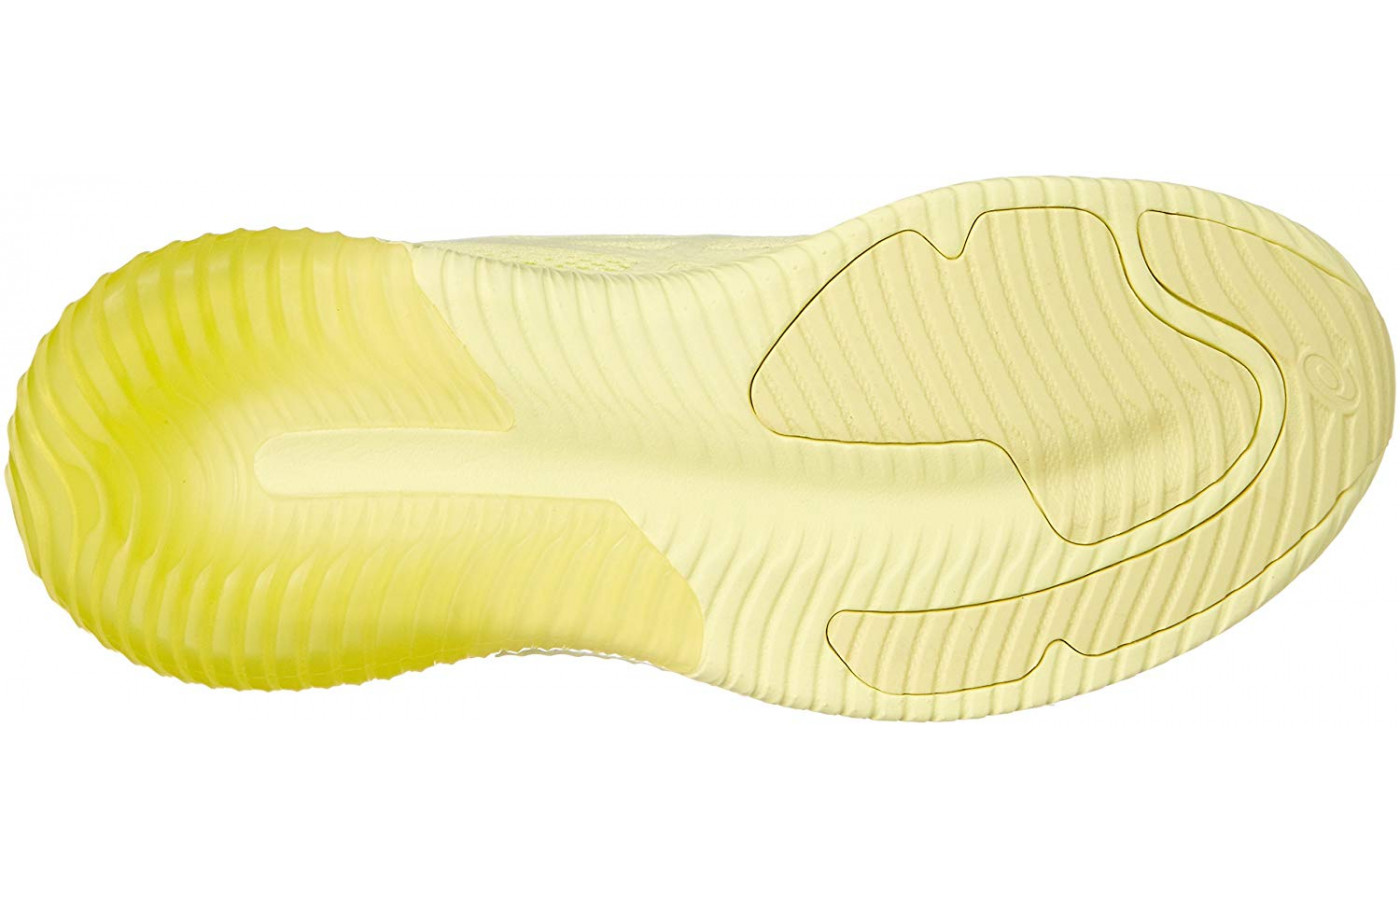 The Gel Kenun MX features a durable rubber outsole